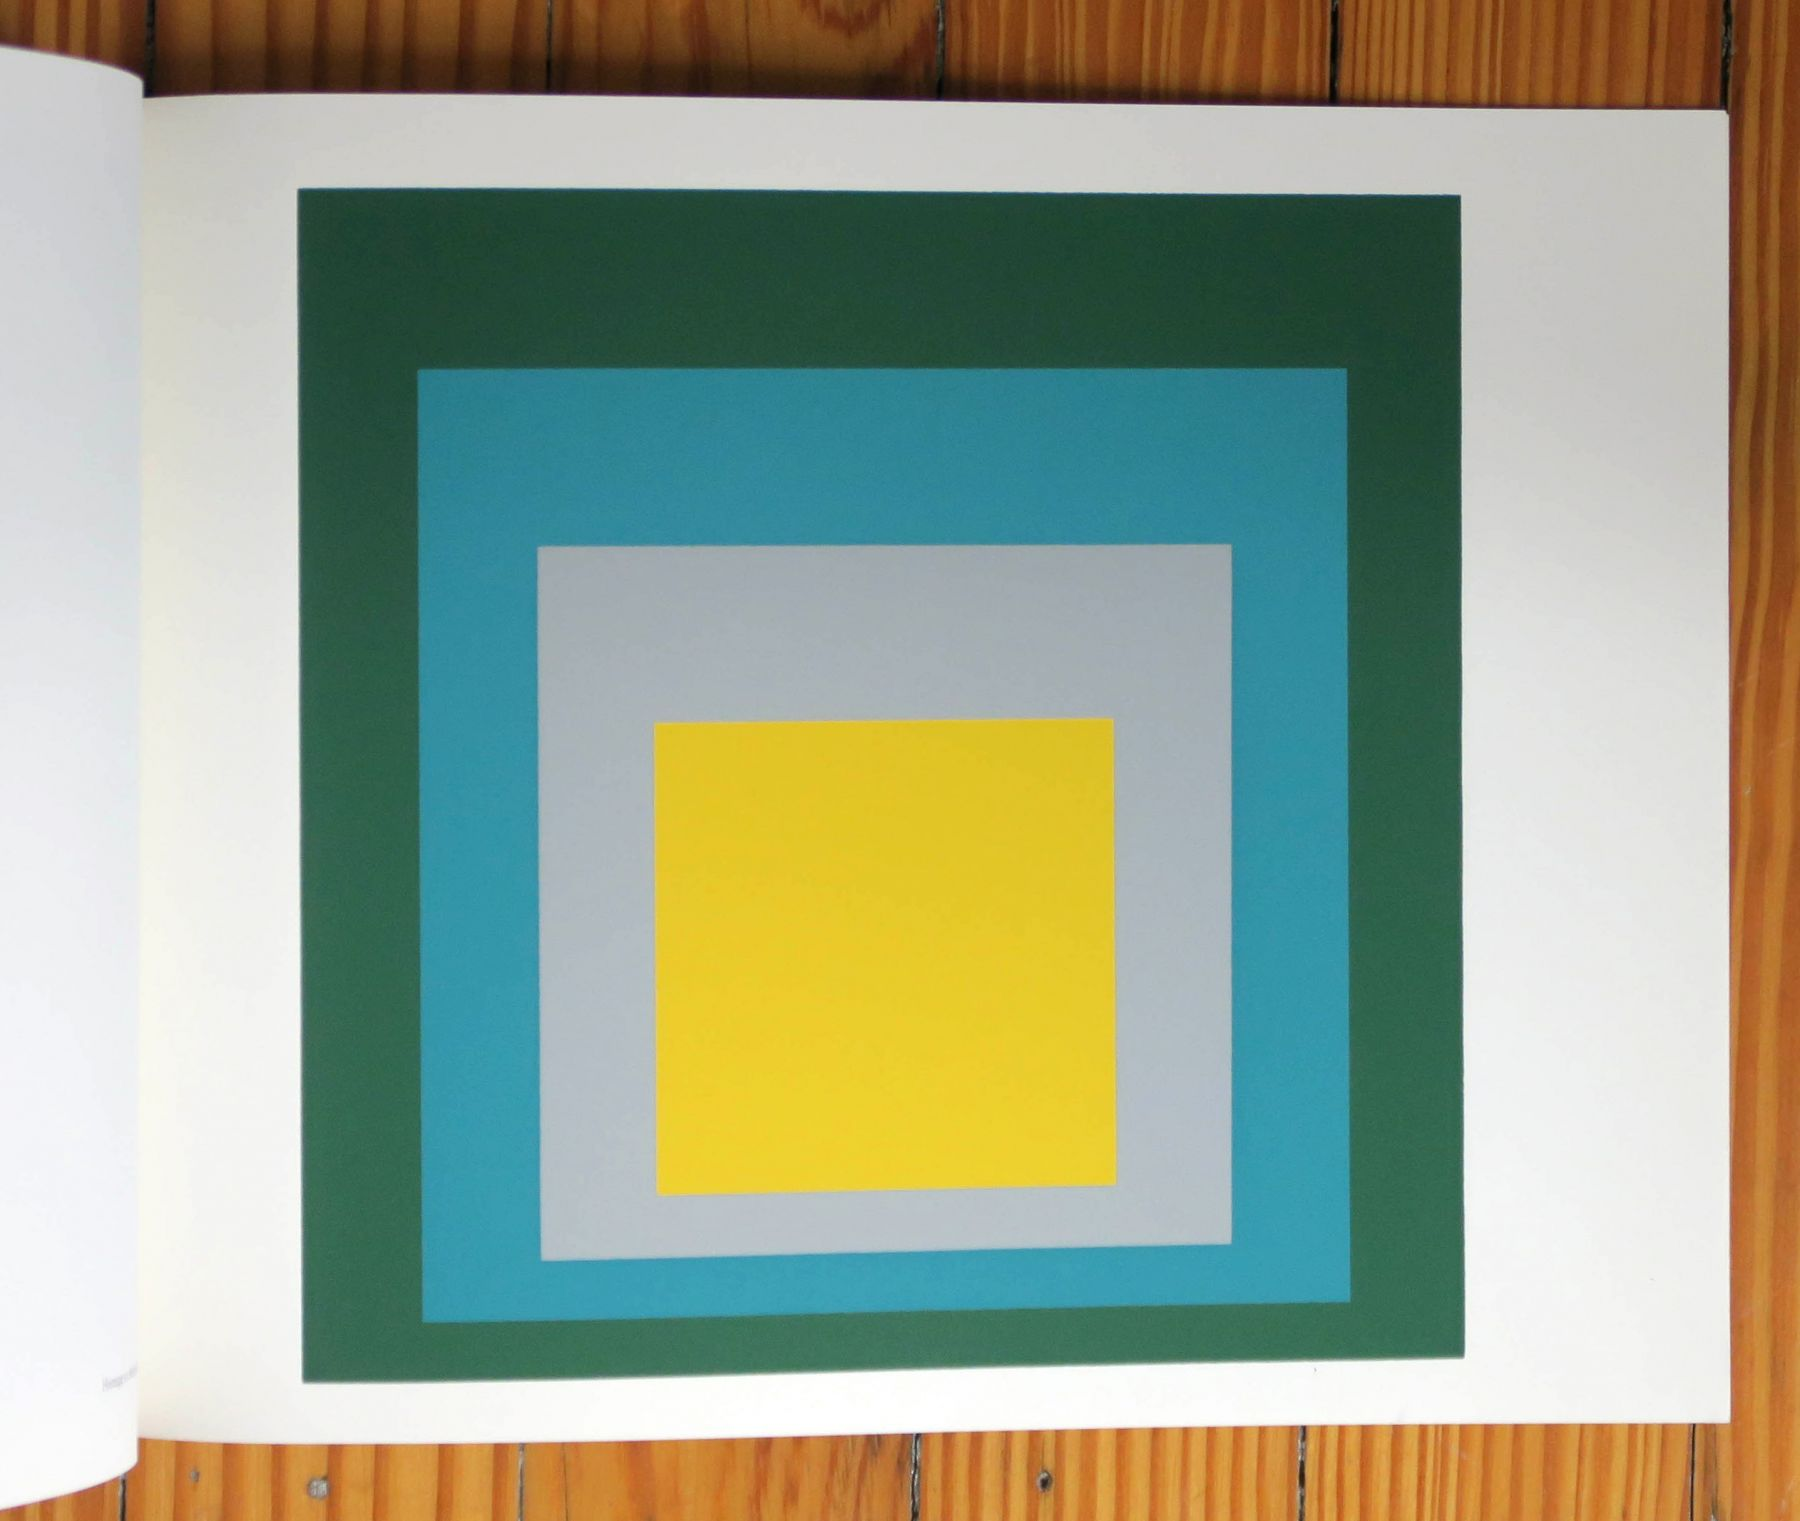 Alternate Projects, Albers: New Paintings by Josef Albers